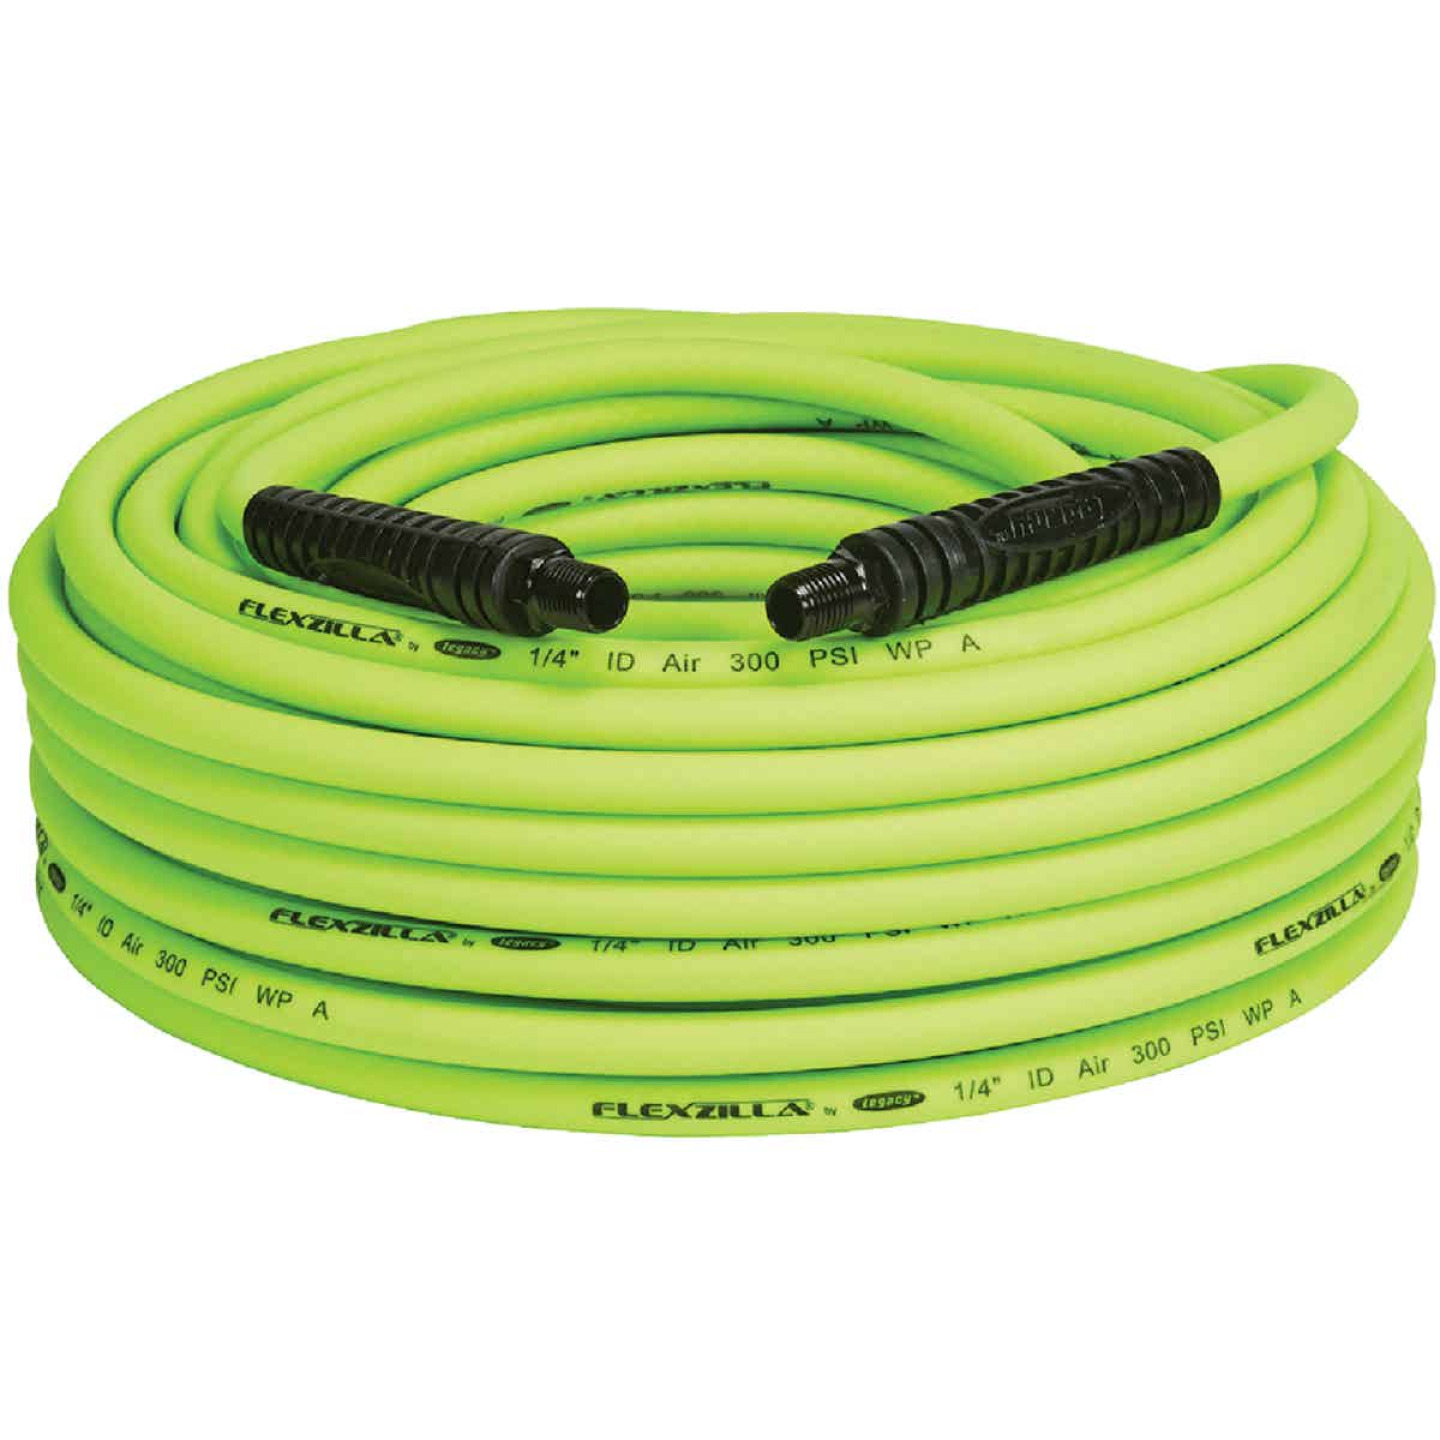 Flexilla 1/4 In. x 100 Ft. Polymer-Blend Air Hose with 1/4 In. MNPT Fittings Image 1